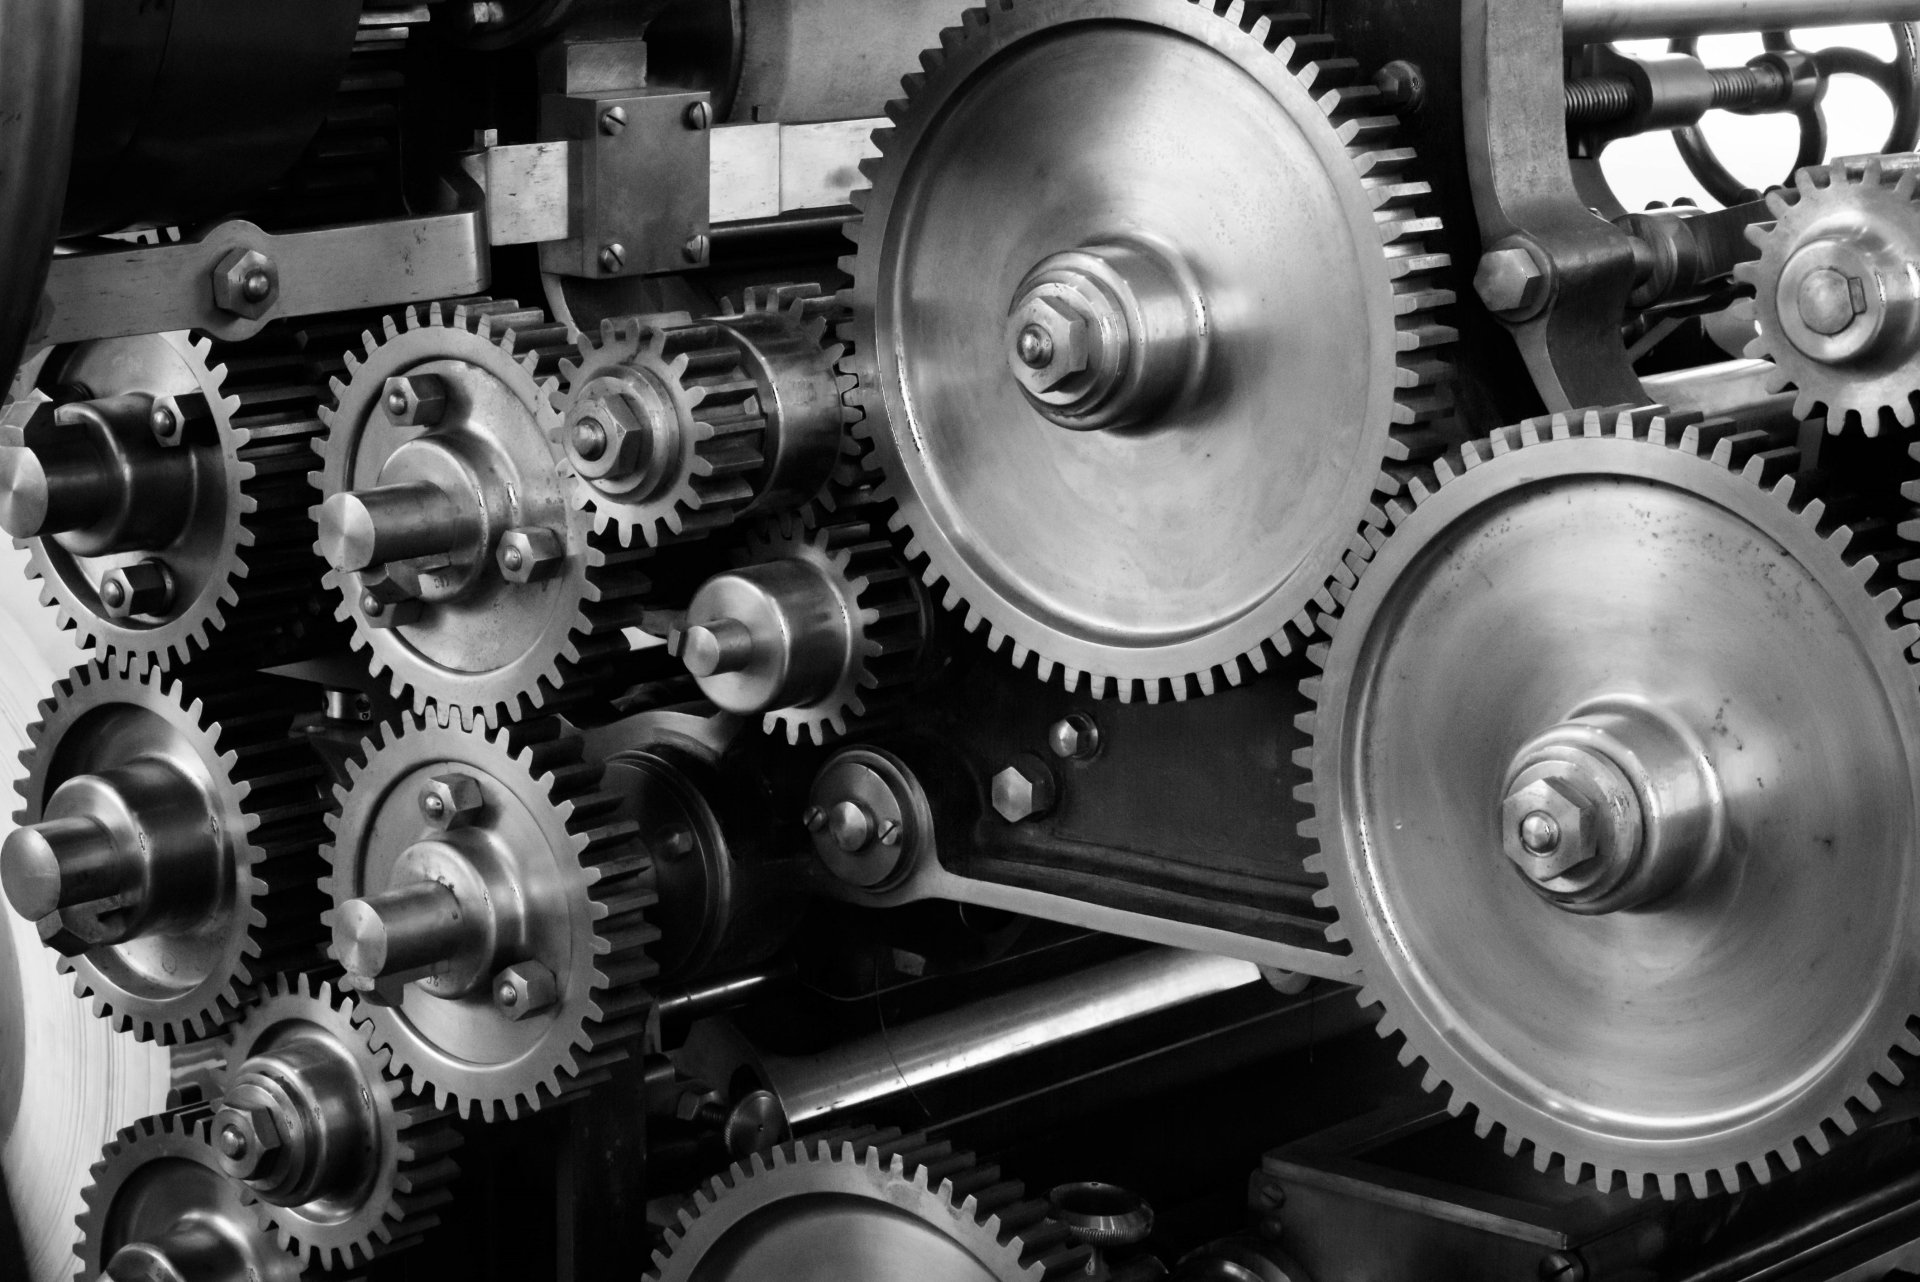 Man Made - Gear  Gears Black & White Wallpaper